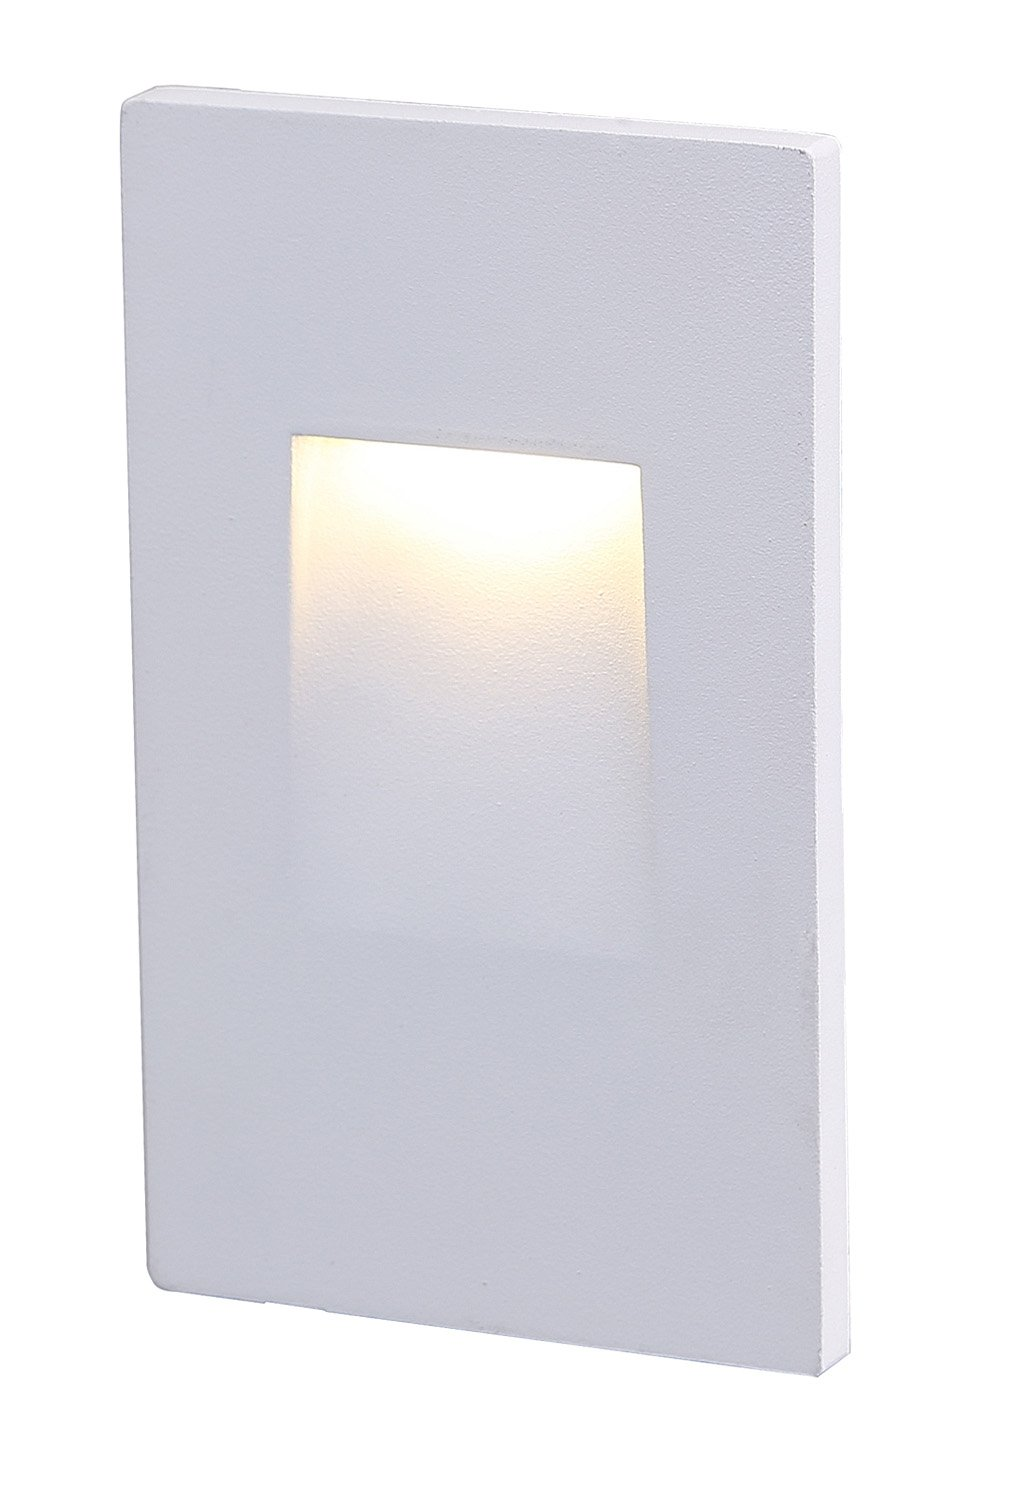 Cloudy Bay CBST004830WH LED Step Light,Vertical,3000K Warm White 3W,Stairway Stair Light,White Finish